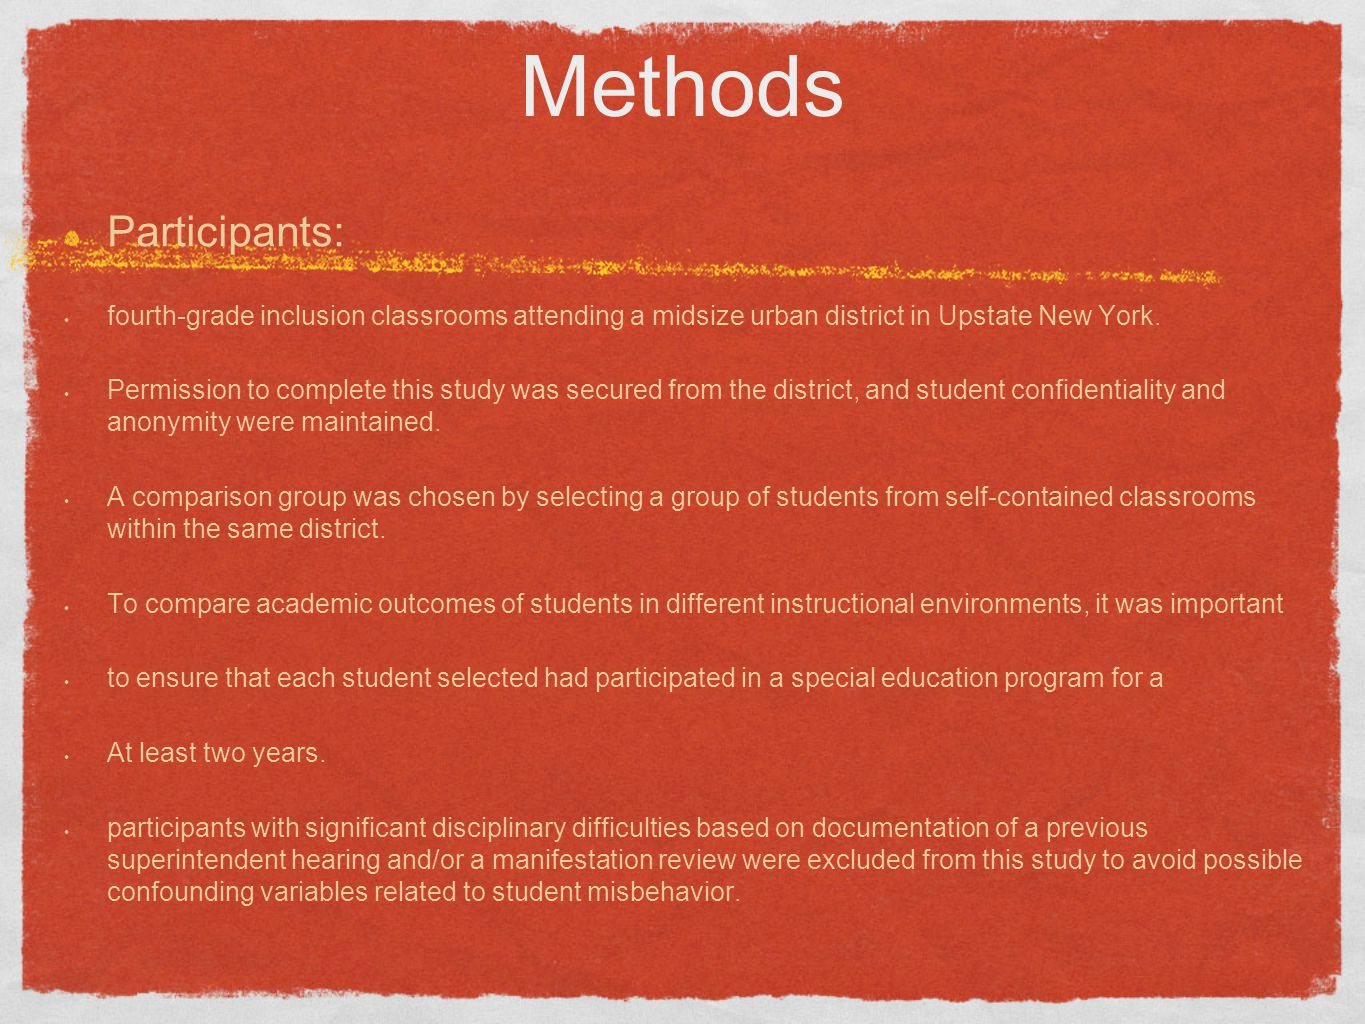 Methods Participants: fourth-grade inclusion classrooms attending a midsize urban district in Upstate New York. Permission to complete this study was